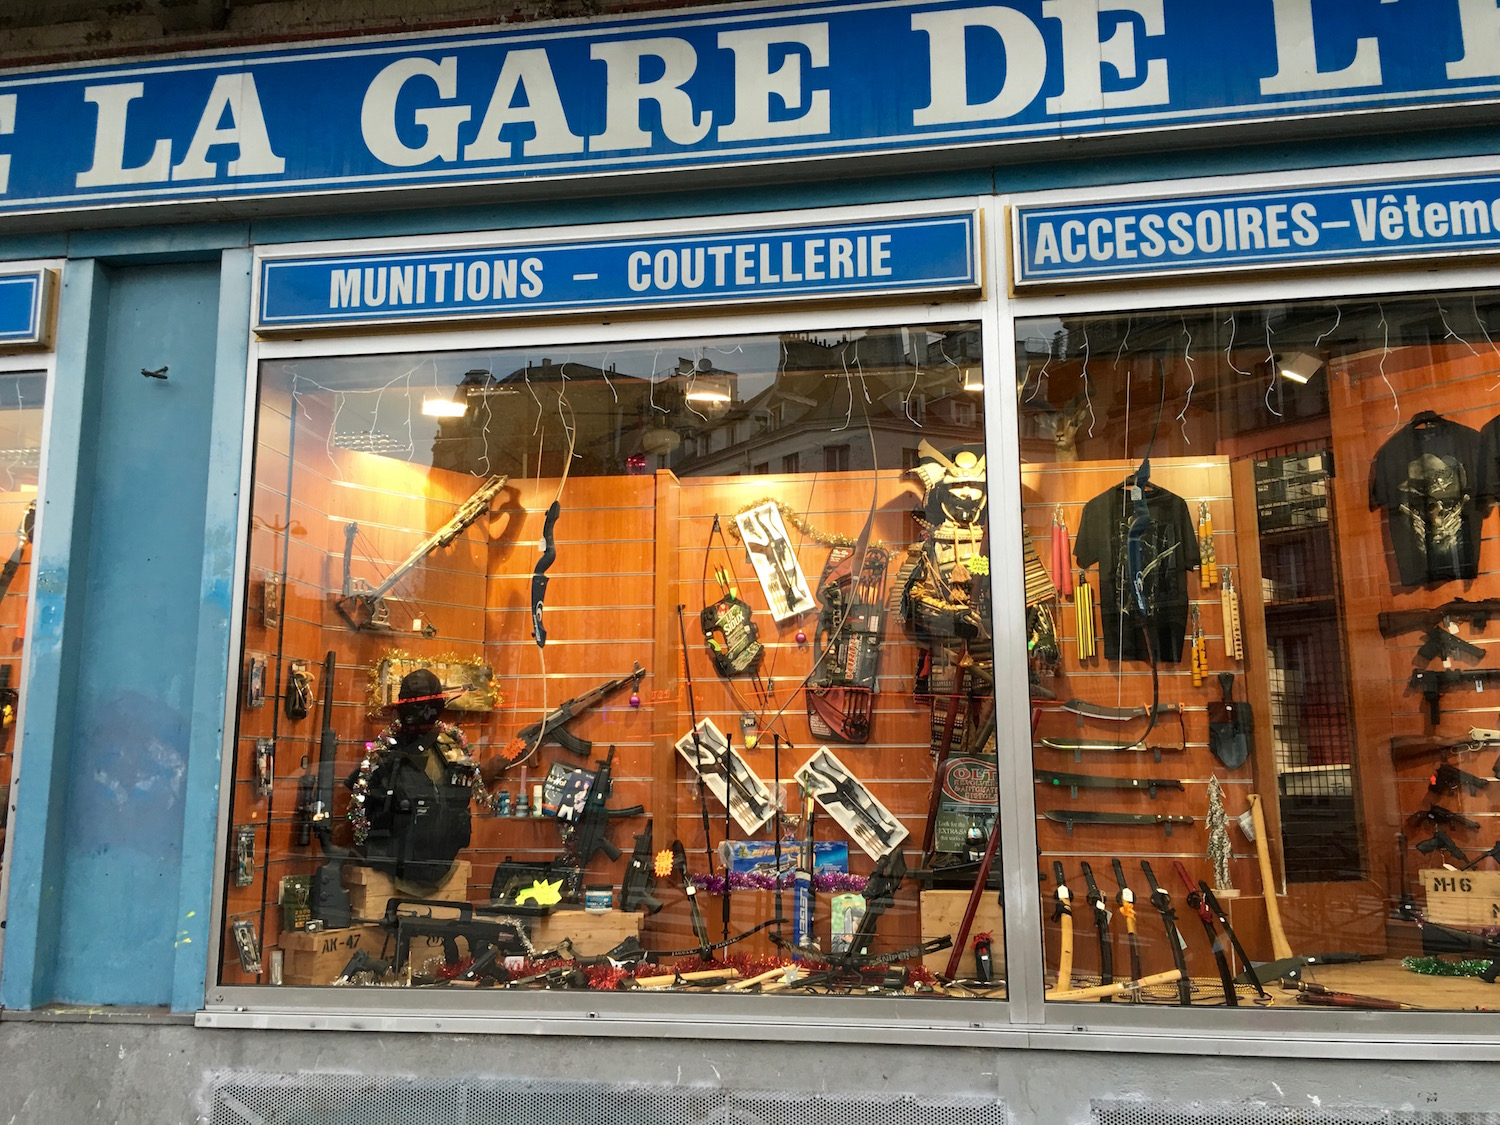 A weapons store in Paris not too far from Gare de Nord. So odd to see after the attacks...